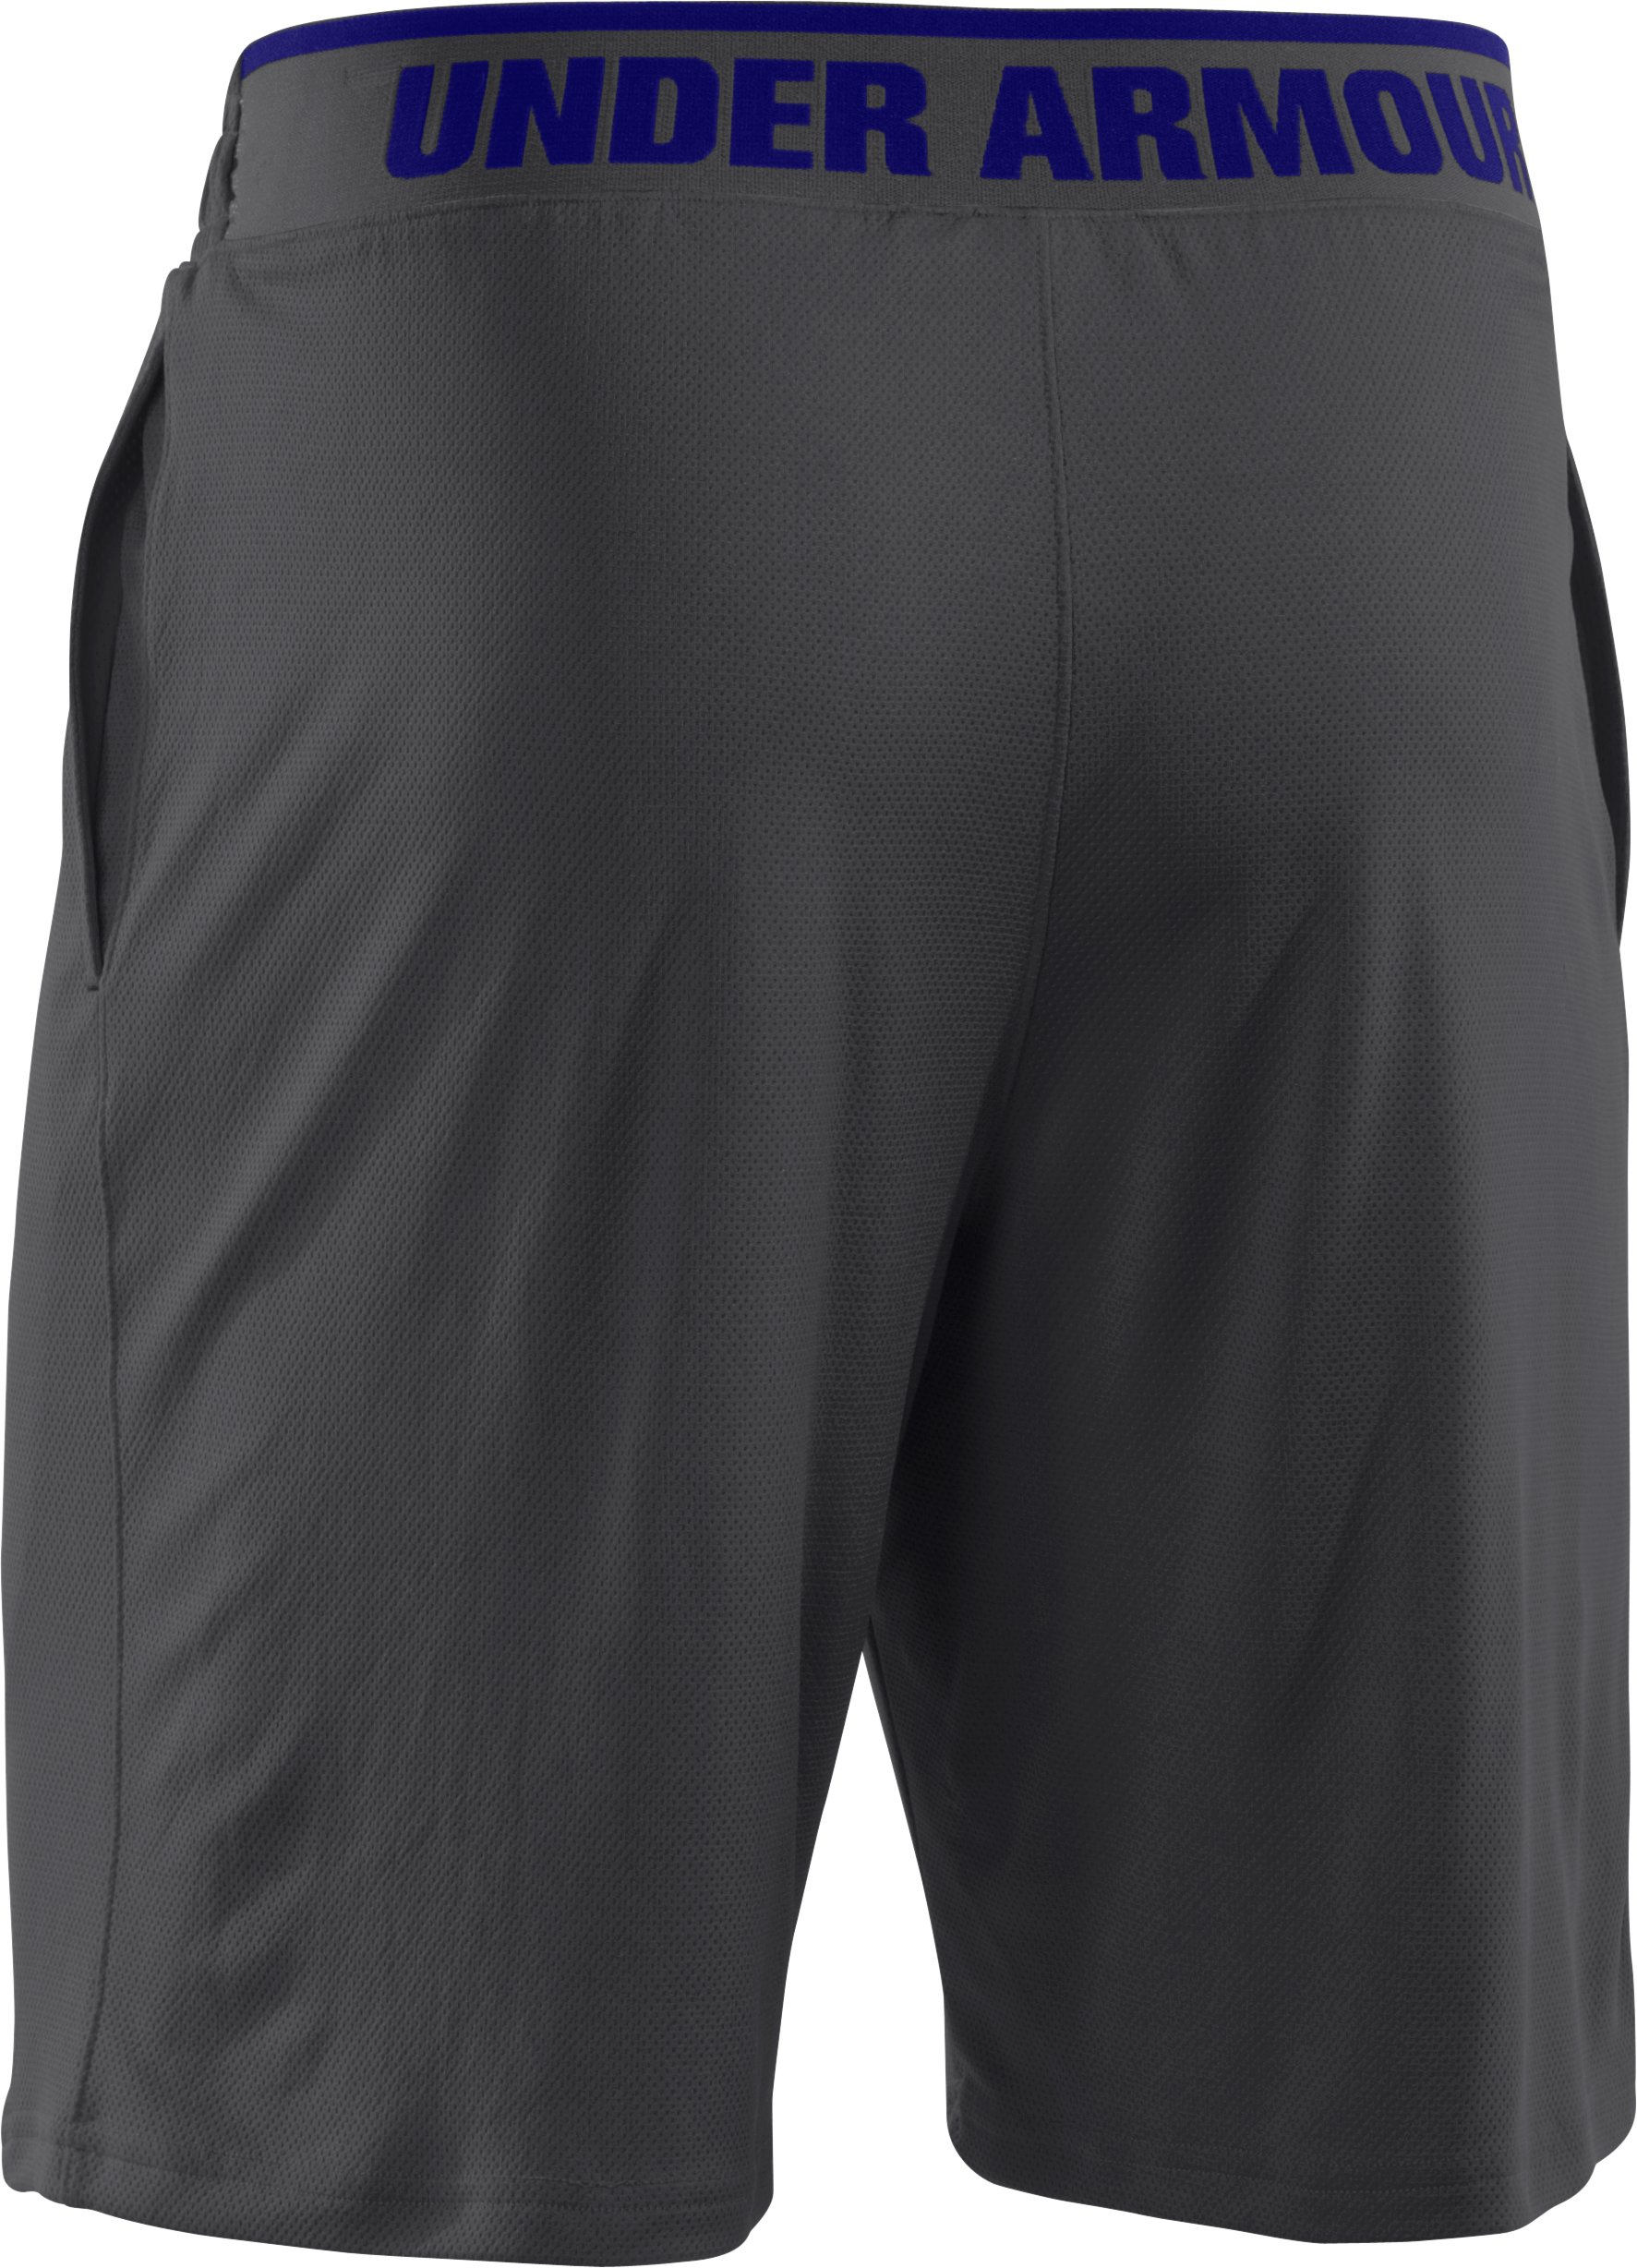 Men's UA Reflex Shorts, Graphite